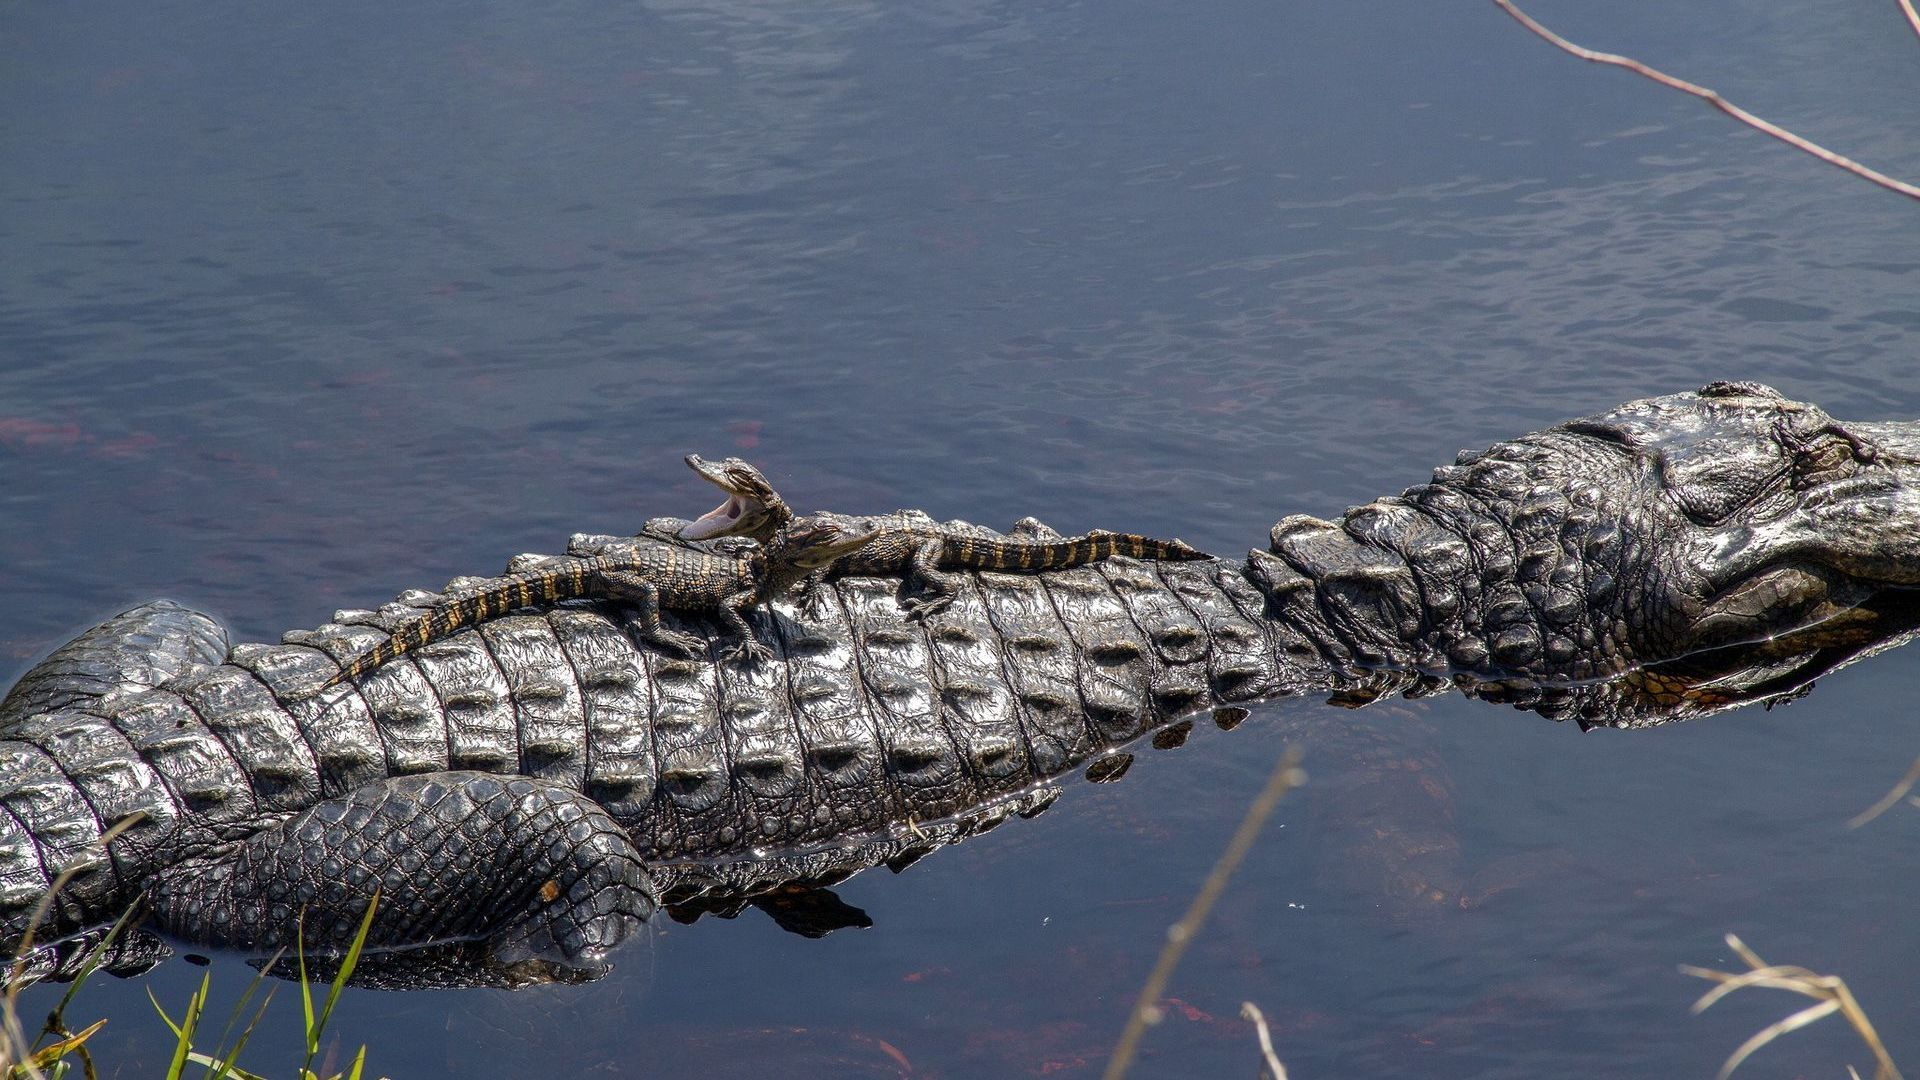 Alligator In The Water Pictures